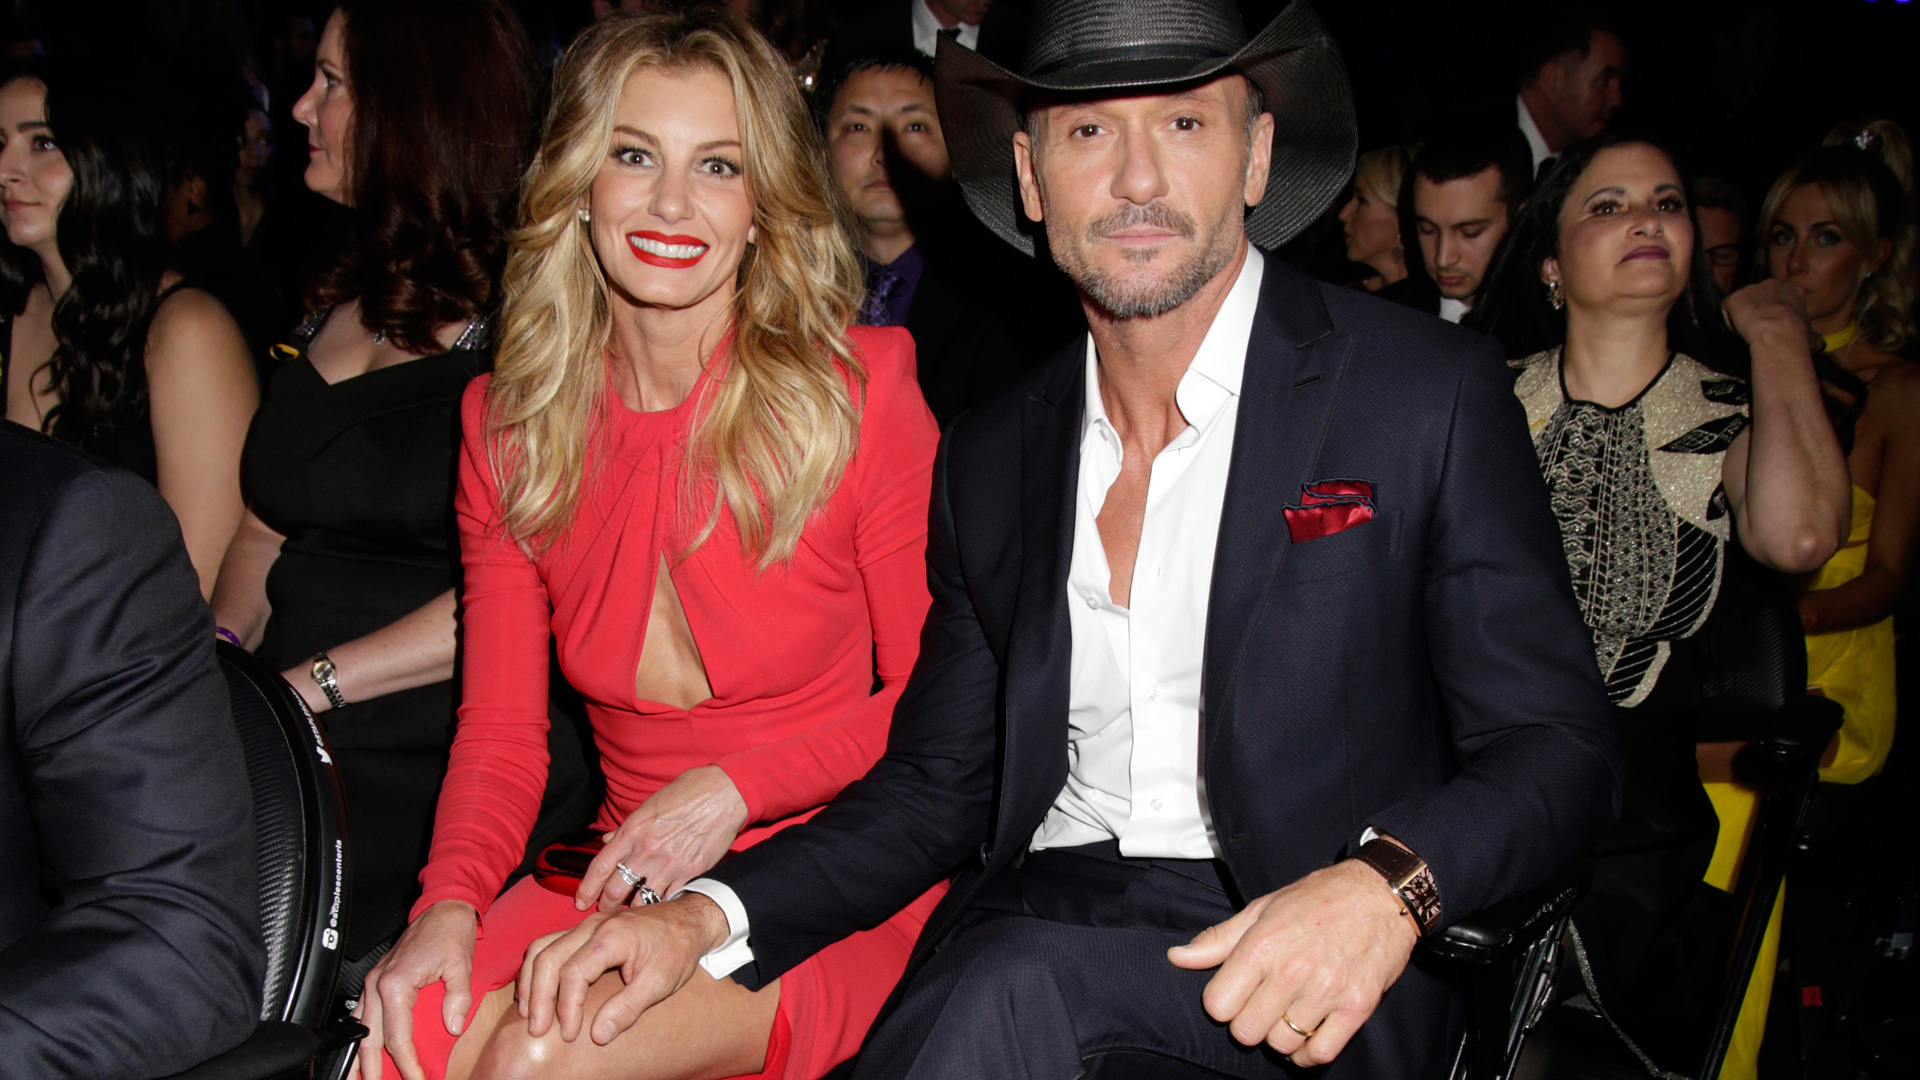 Country-music superstars Faith Hill and Tim McGraw get cozy at the 2017 GRAMMYs.